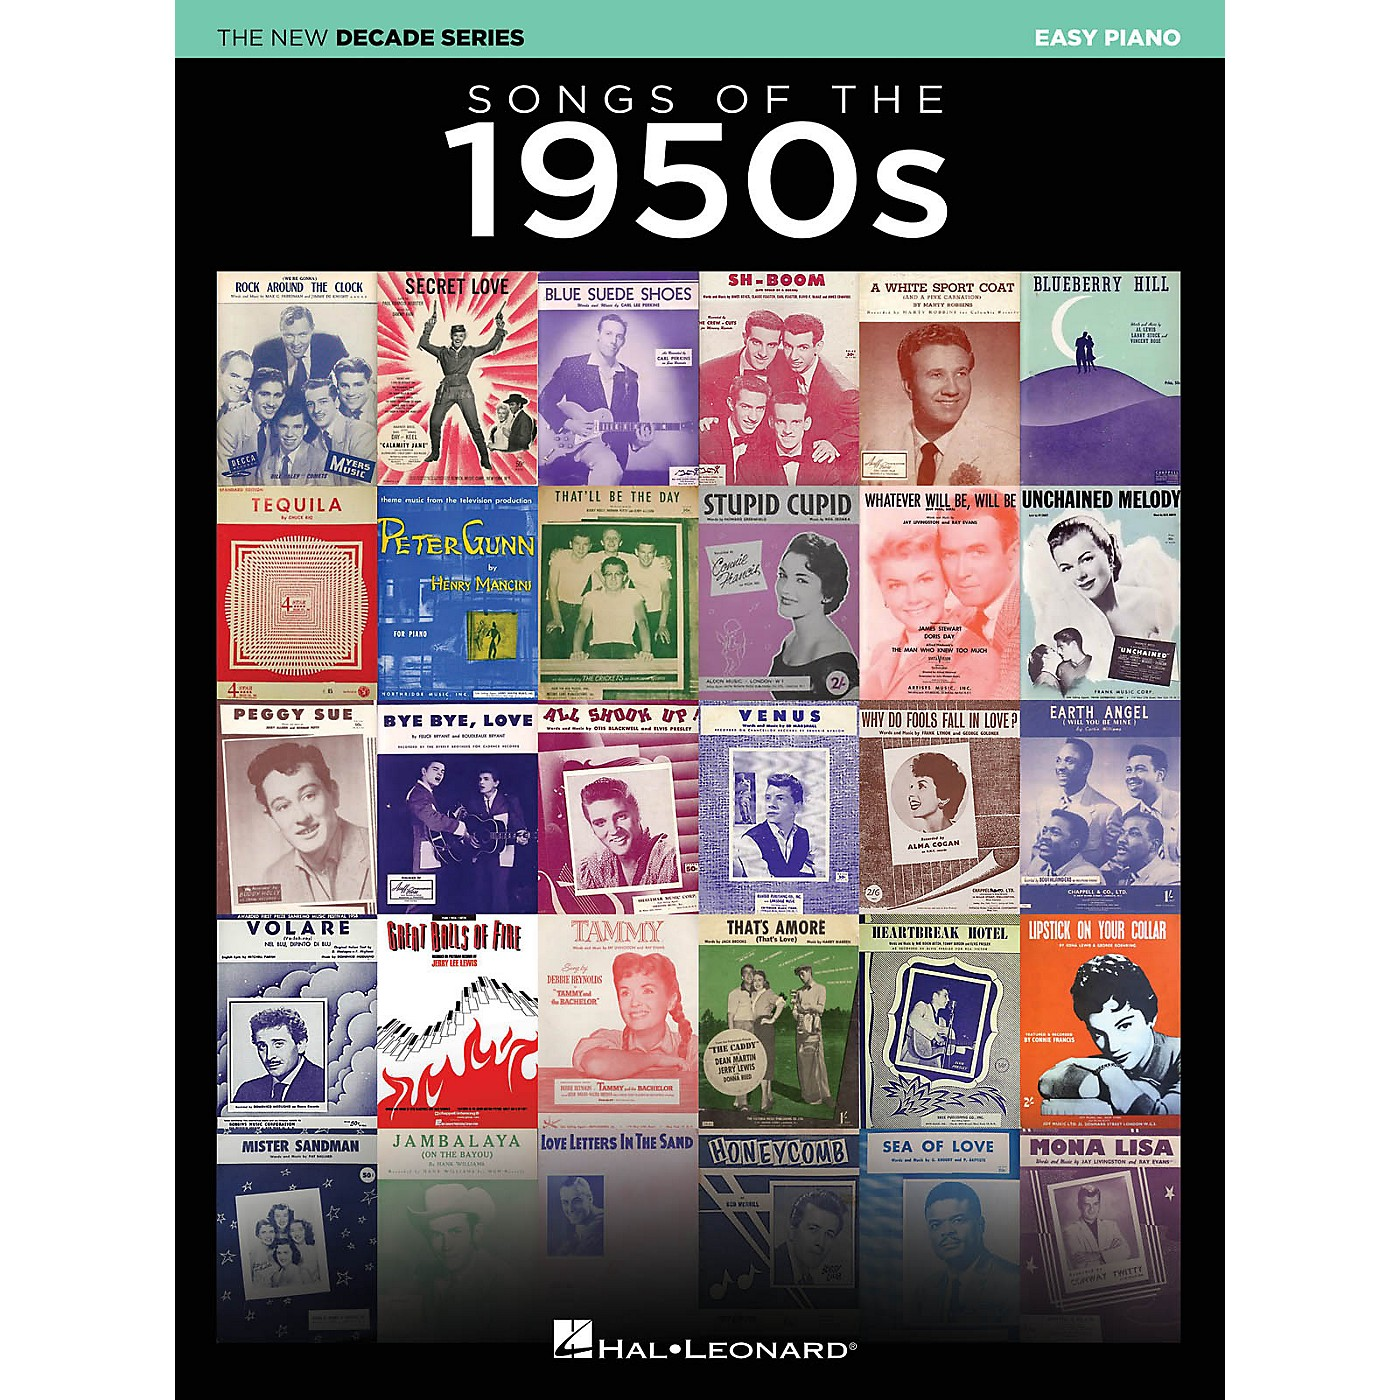 Hal Leonard Songs of the 1950s (The New Decade Series) Easy Piano Songbook thumbnail